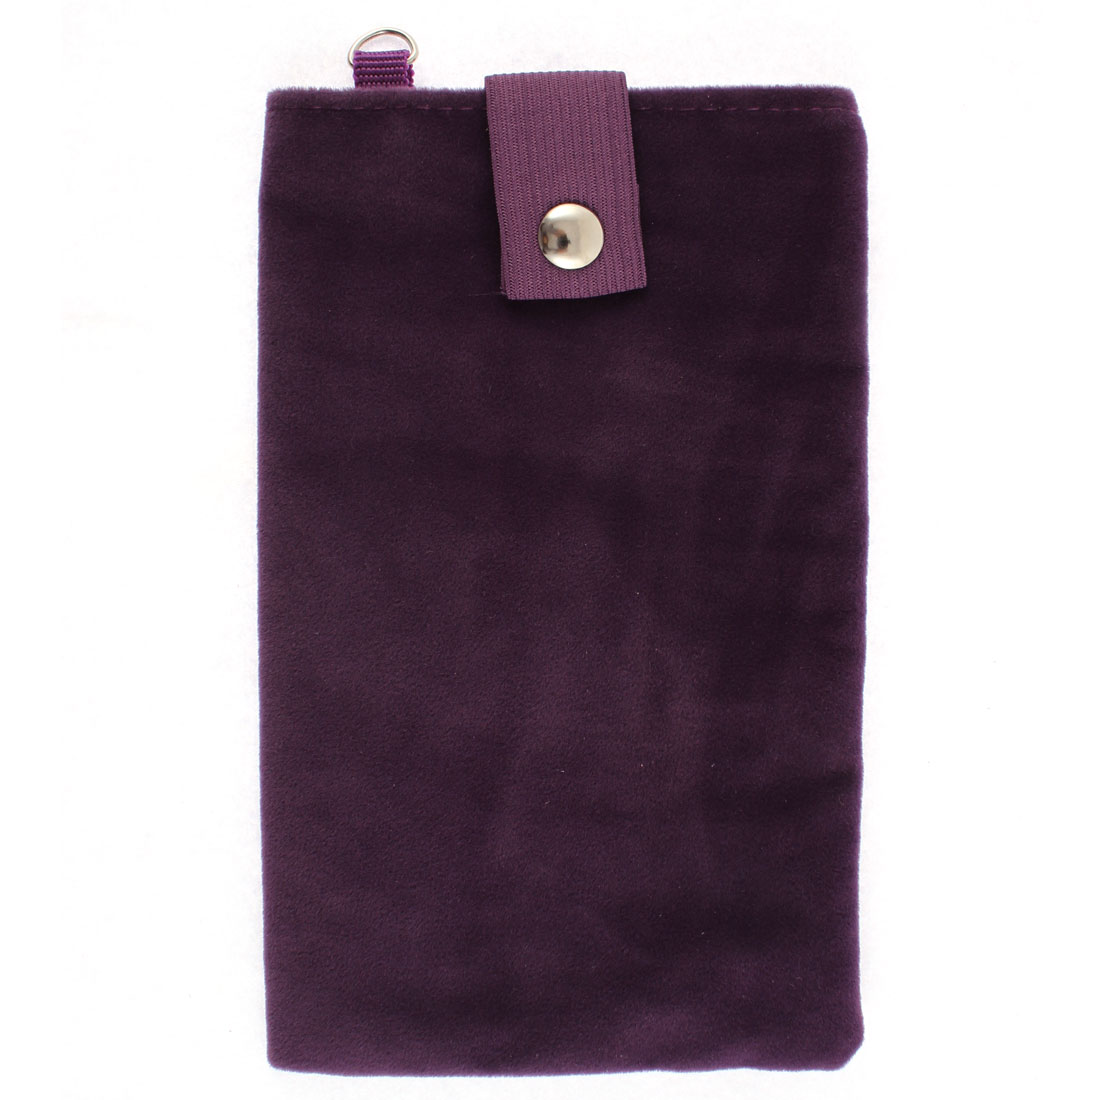 Dual Layer Magnetic Clasp Button Cell Phone Pouch Bag Holder Dark Purple